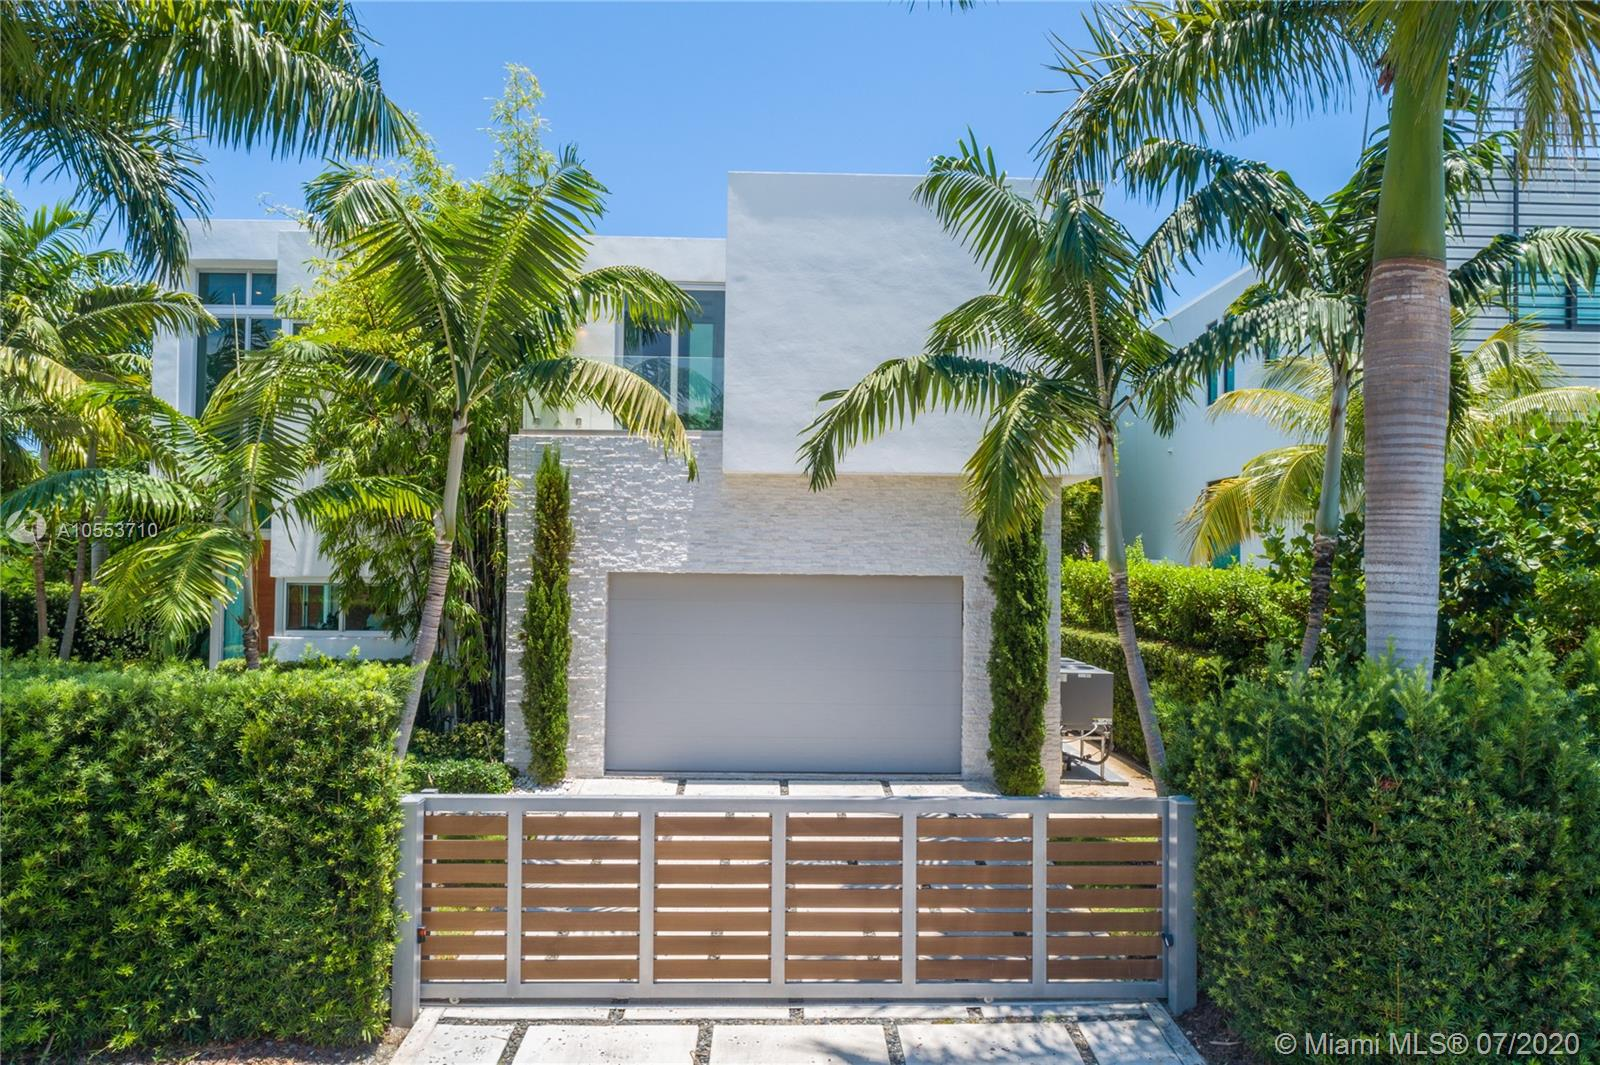 Income producing Hibiscus Island Miami Beach home with $26,000 month paying tenant. Lushly landscaped and strikingly modern two-level turnkey residence located in Hibiscus Island on a prime 9,500 sf corner lot. Combining functionality and design, it has an adj. area of 4.090 sf., 5 beds and 5.5 baths with glass walls that overlook the resort-inspired backyard. This tropical oasis features an inviting pool, fire pit, grill and lounging areas. Upstairs is the clean-lined master bedroom with 2 walk-in closets and spa-like bath, two guest bedrooms and a bedroom converted into a fitness room. Highlights include an open kitchen with upright wine cooler, office, two-car garage, rooftop terrace and more.